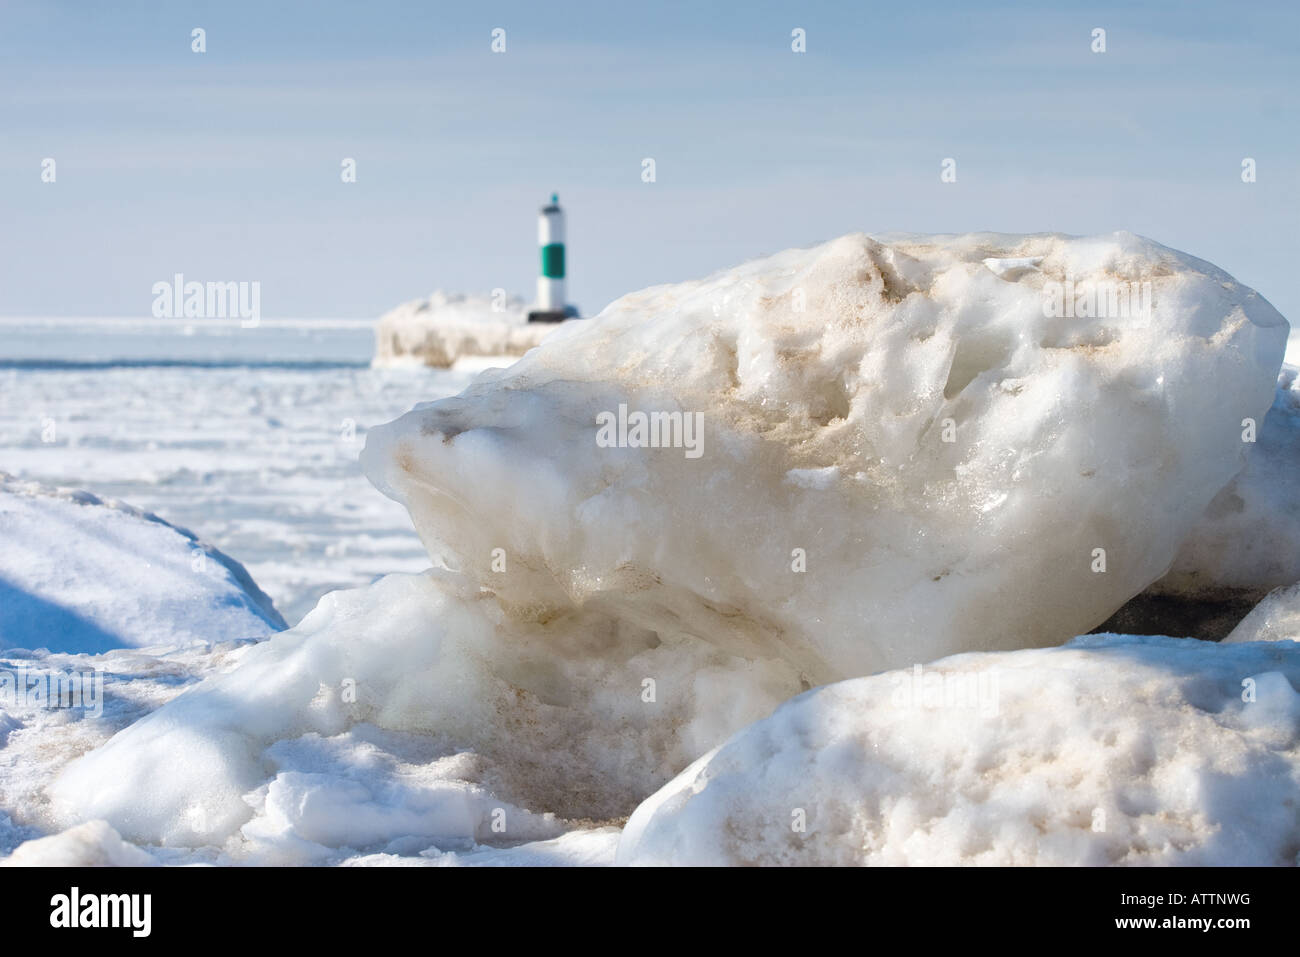 Large chunk of ice and snow with Lake Michigan and a green channel marker light in the background - Stock Image